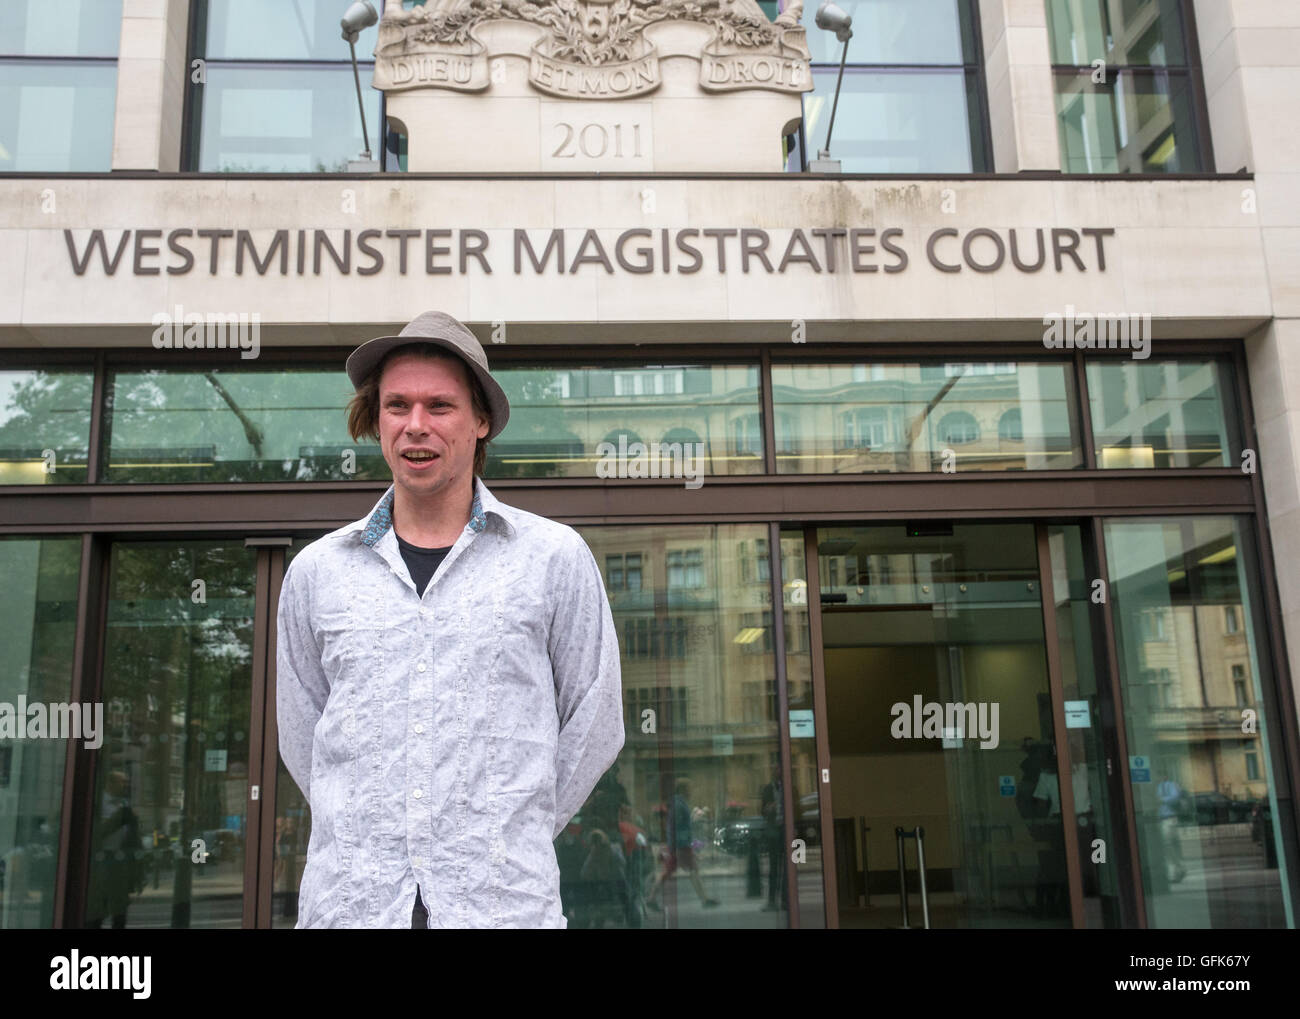 Extradition hearing for Lauri Love, 30,who has been charged with hacking into various agencies, including the US - Stock Image